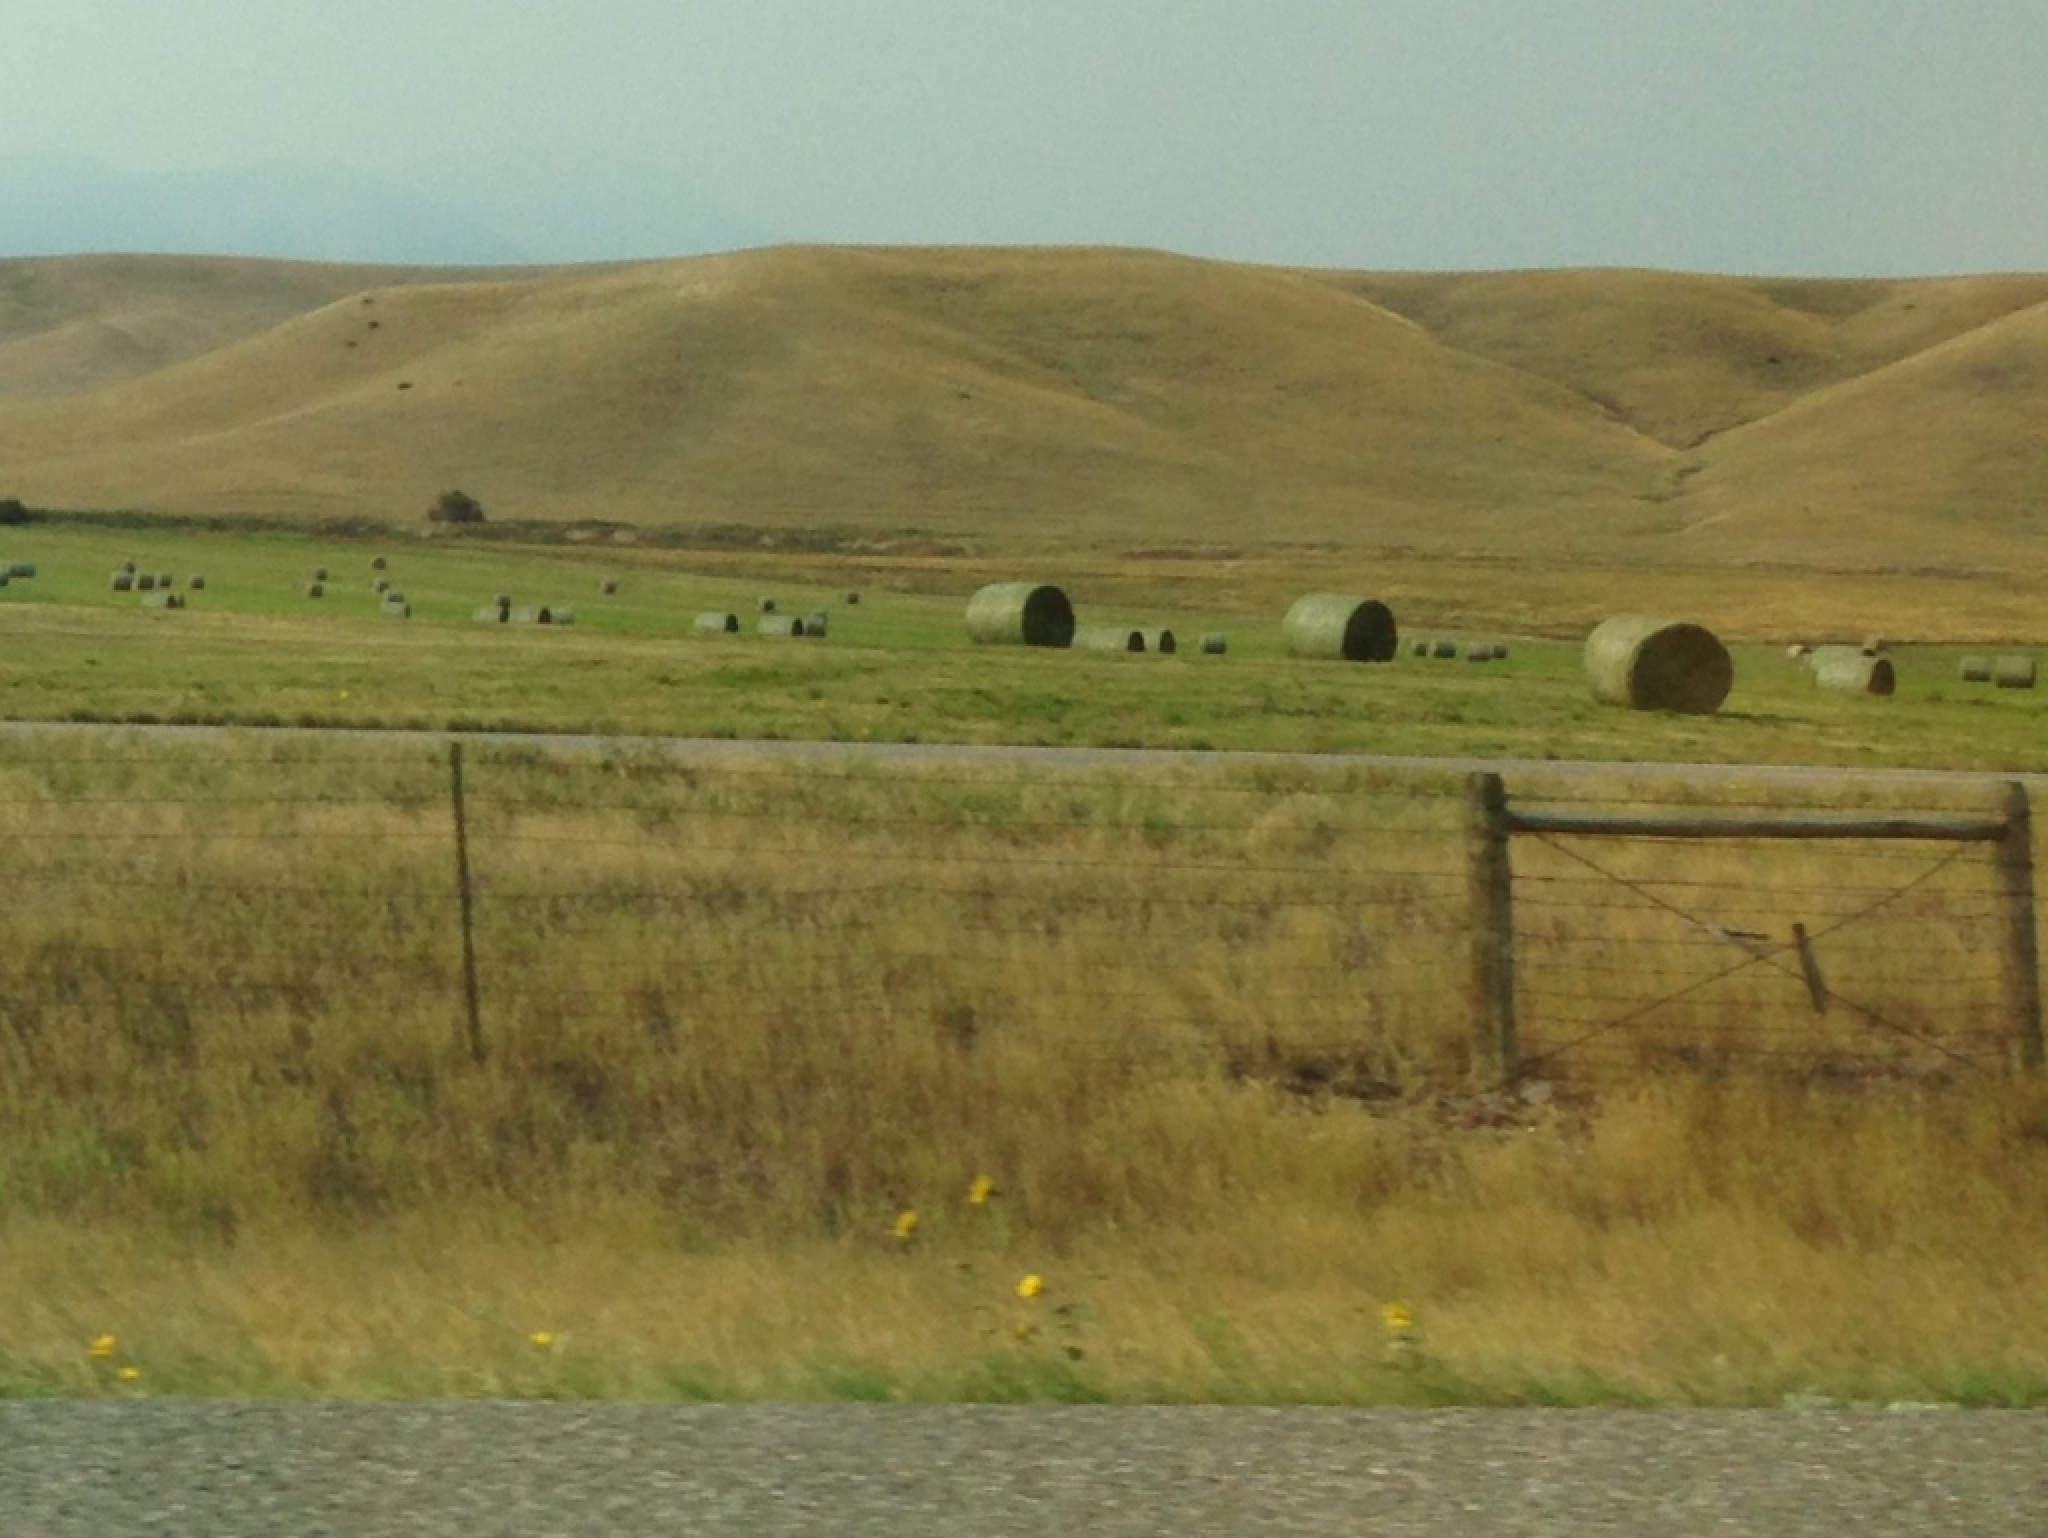 Montana Highways by samantha.jenkins.5030